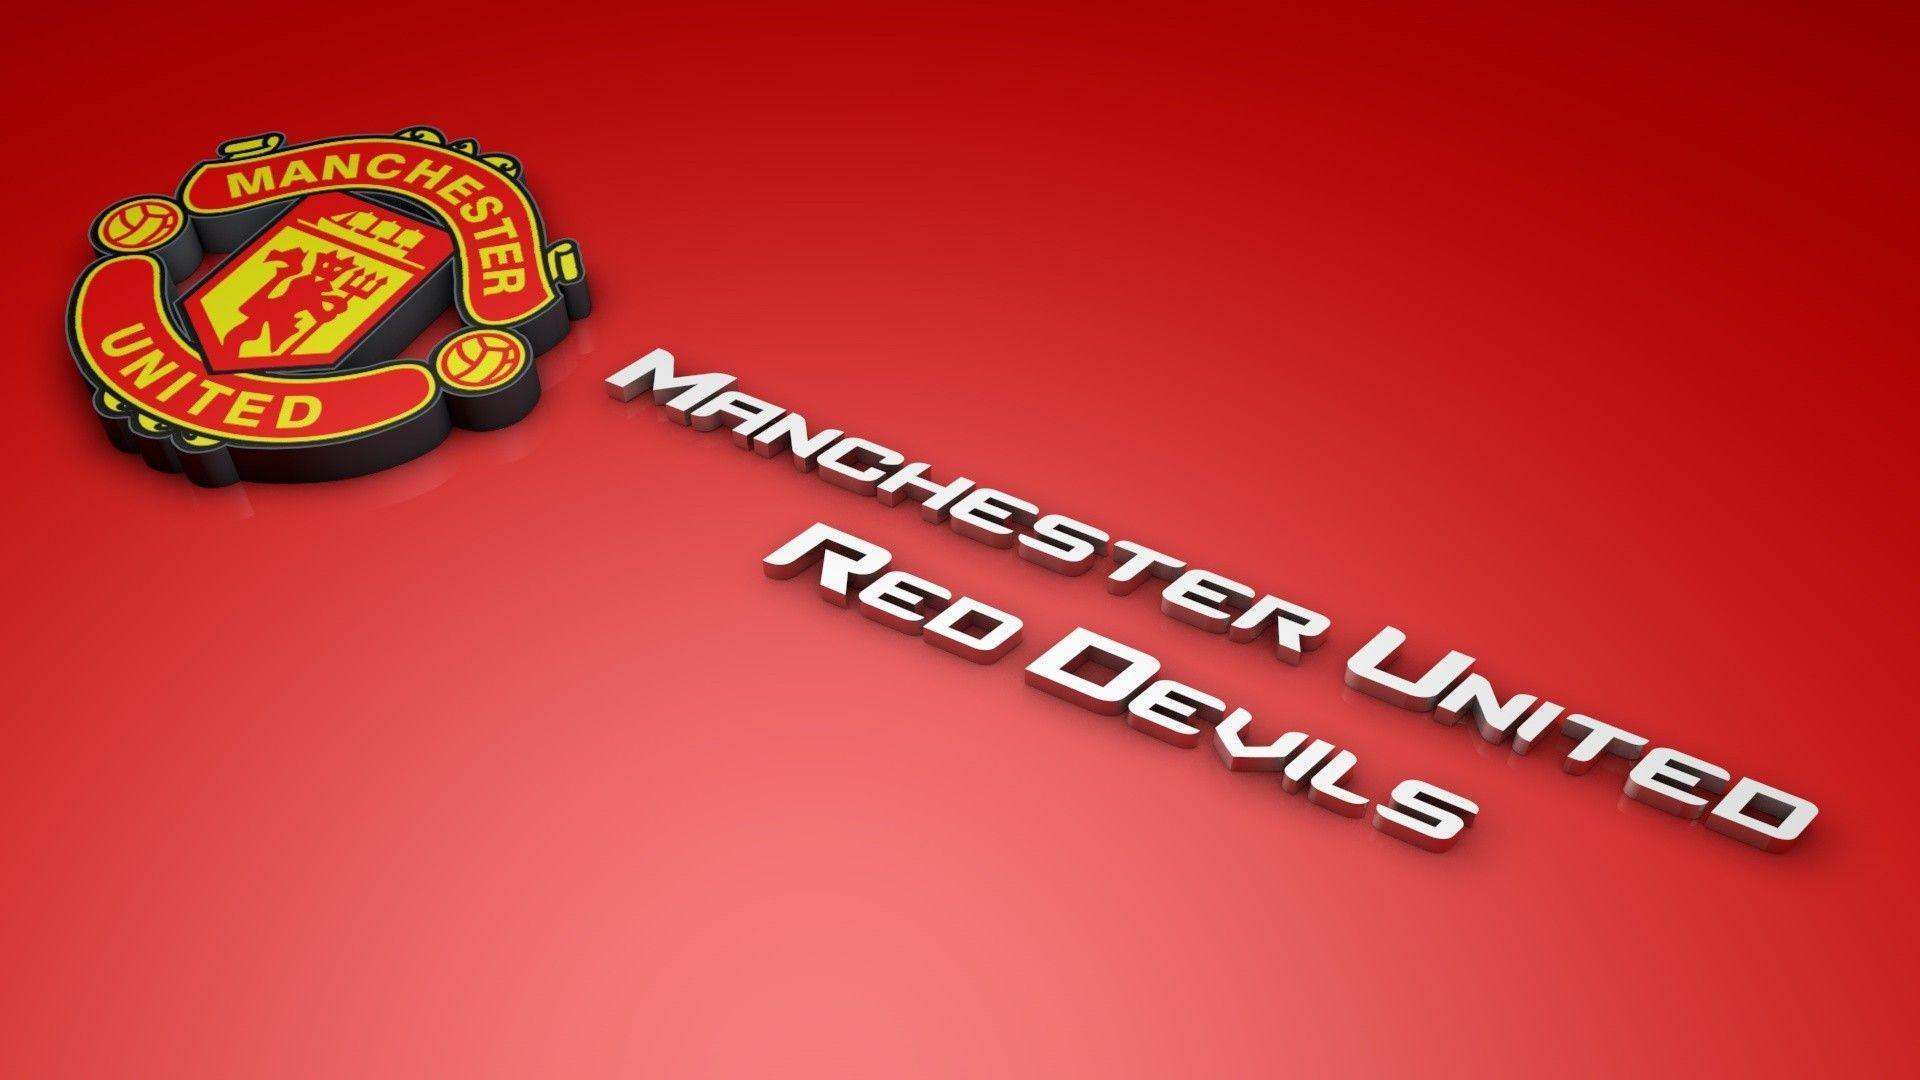 Manchester United Wallpapers 3D 2015 1920x1080